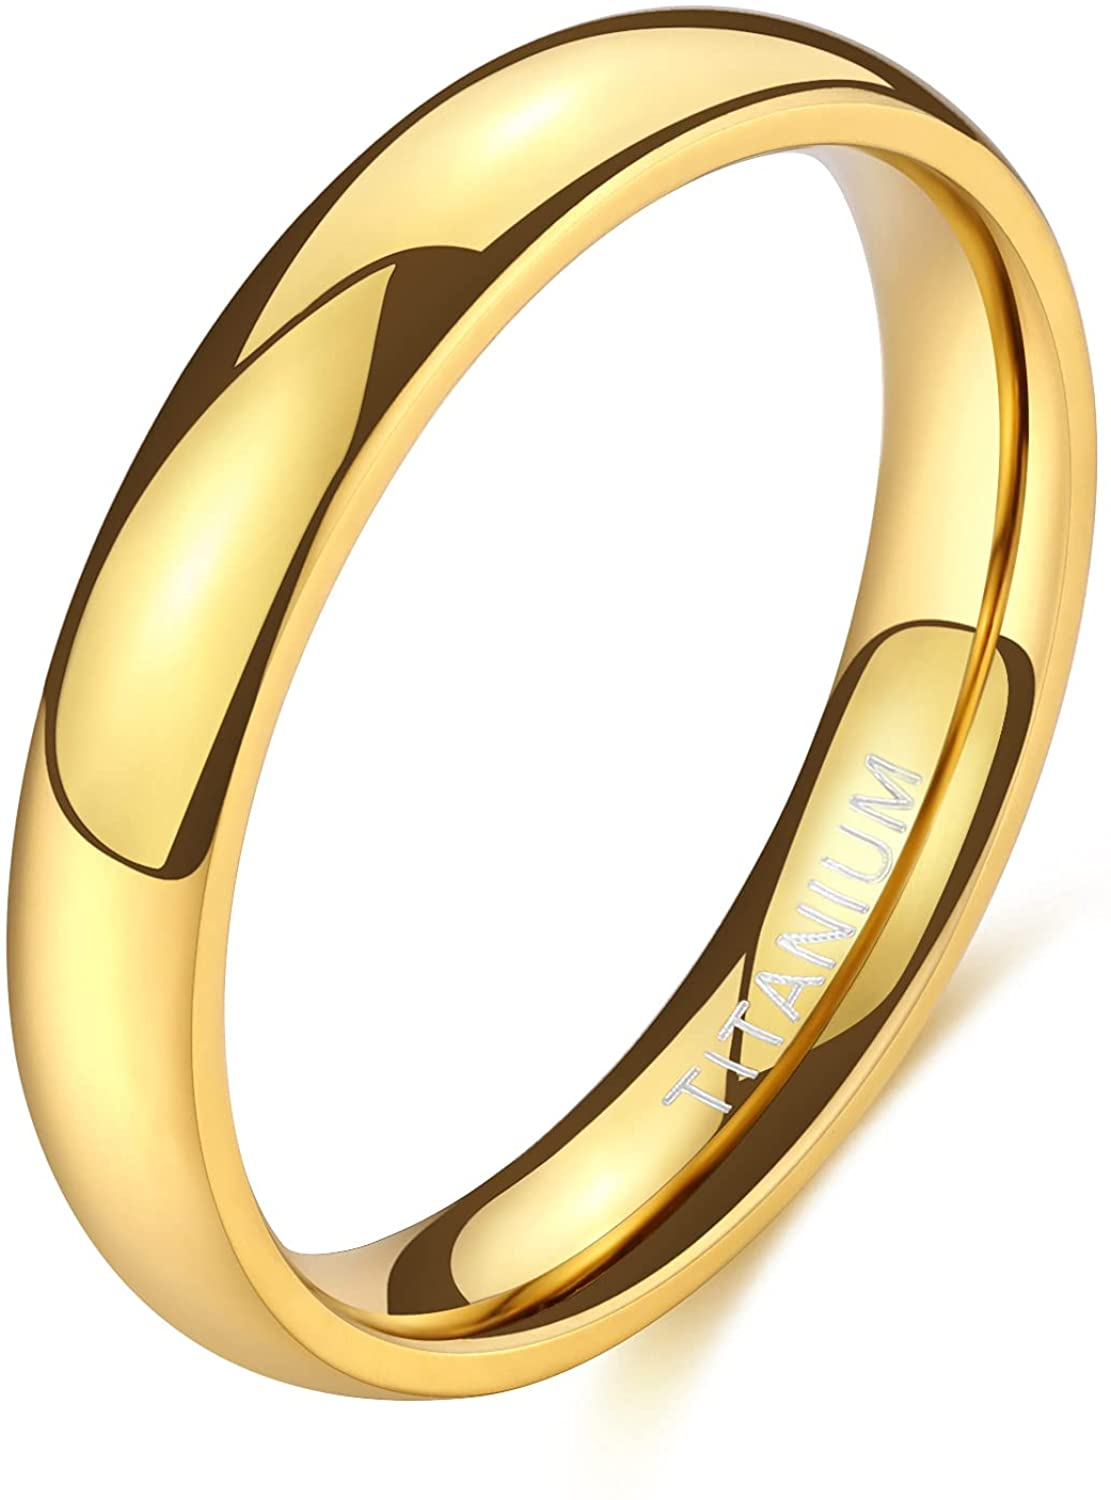 TIGRADE 2mm 4mm 6mm Gold Titanium Ring Plain Dome High Polished Wedding Band Comfort Fit Size 3-13.5